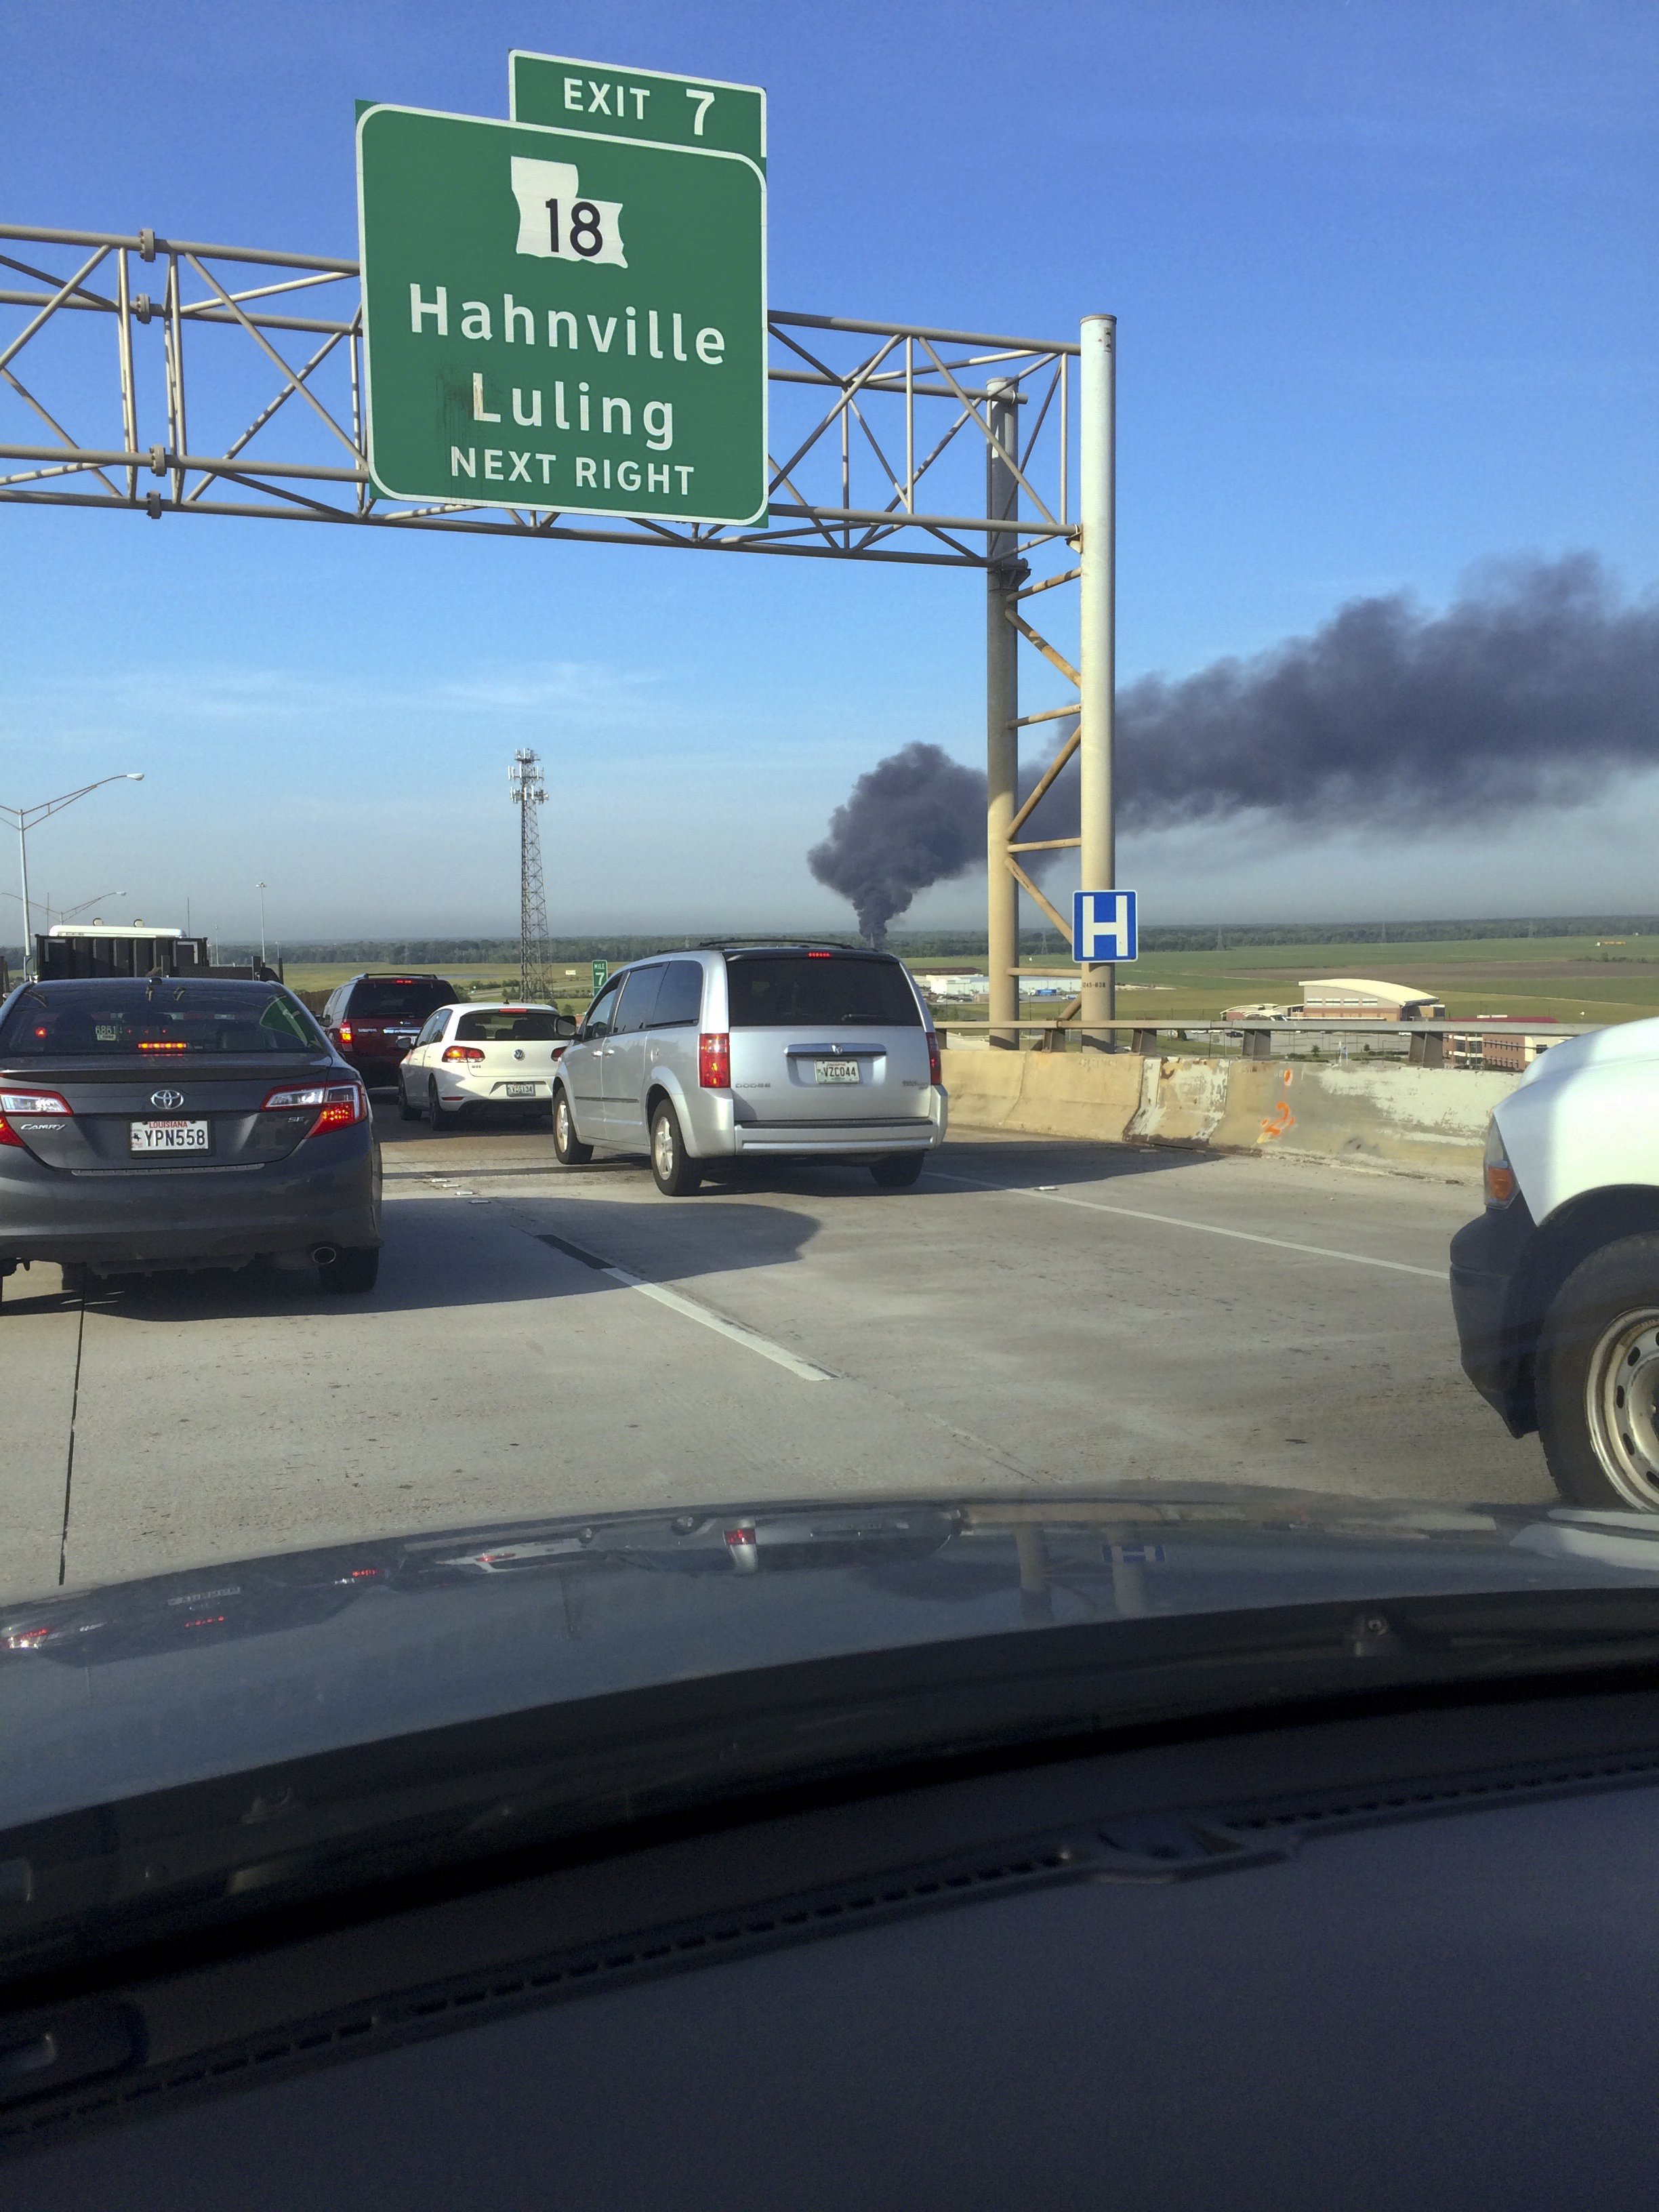 Overturned fuel truck on fire in Luling